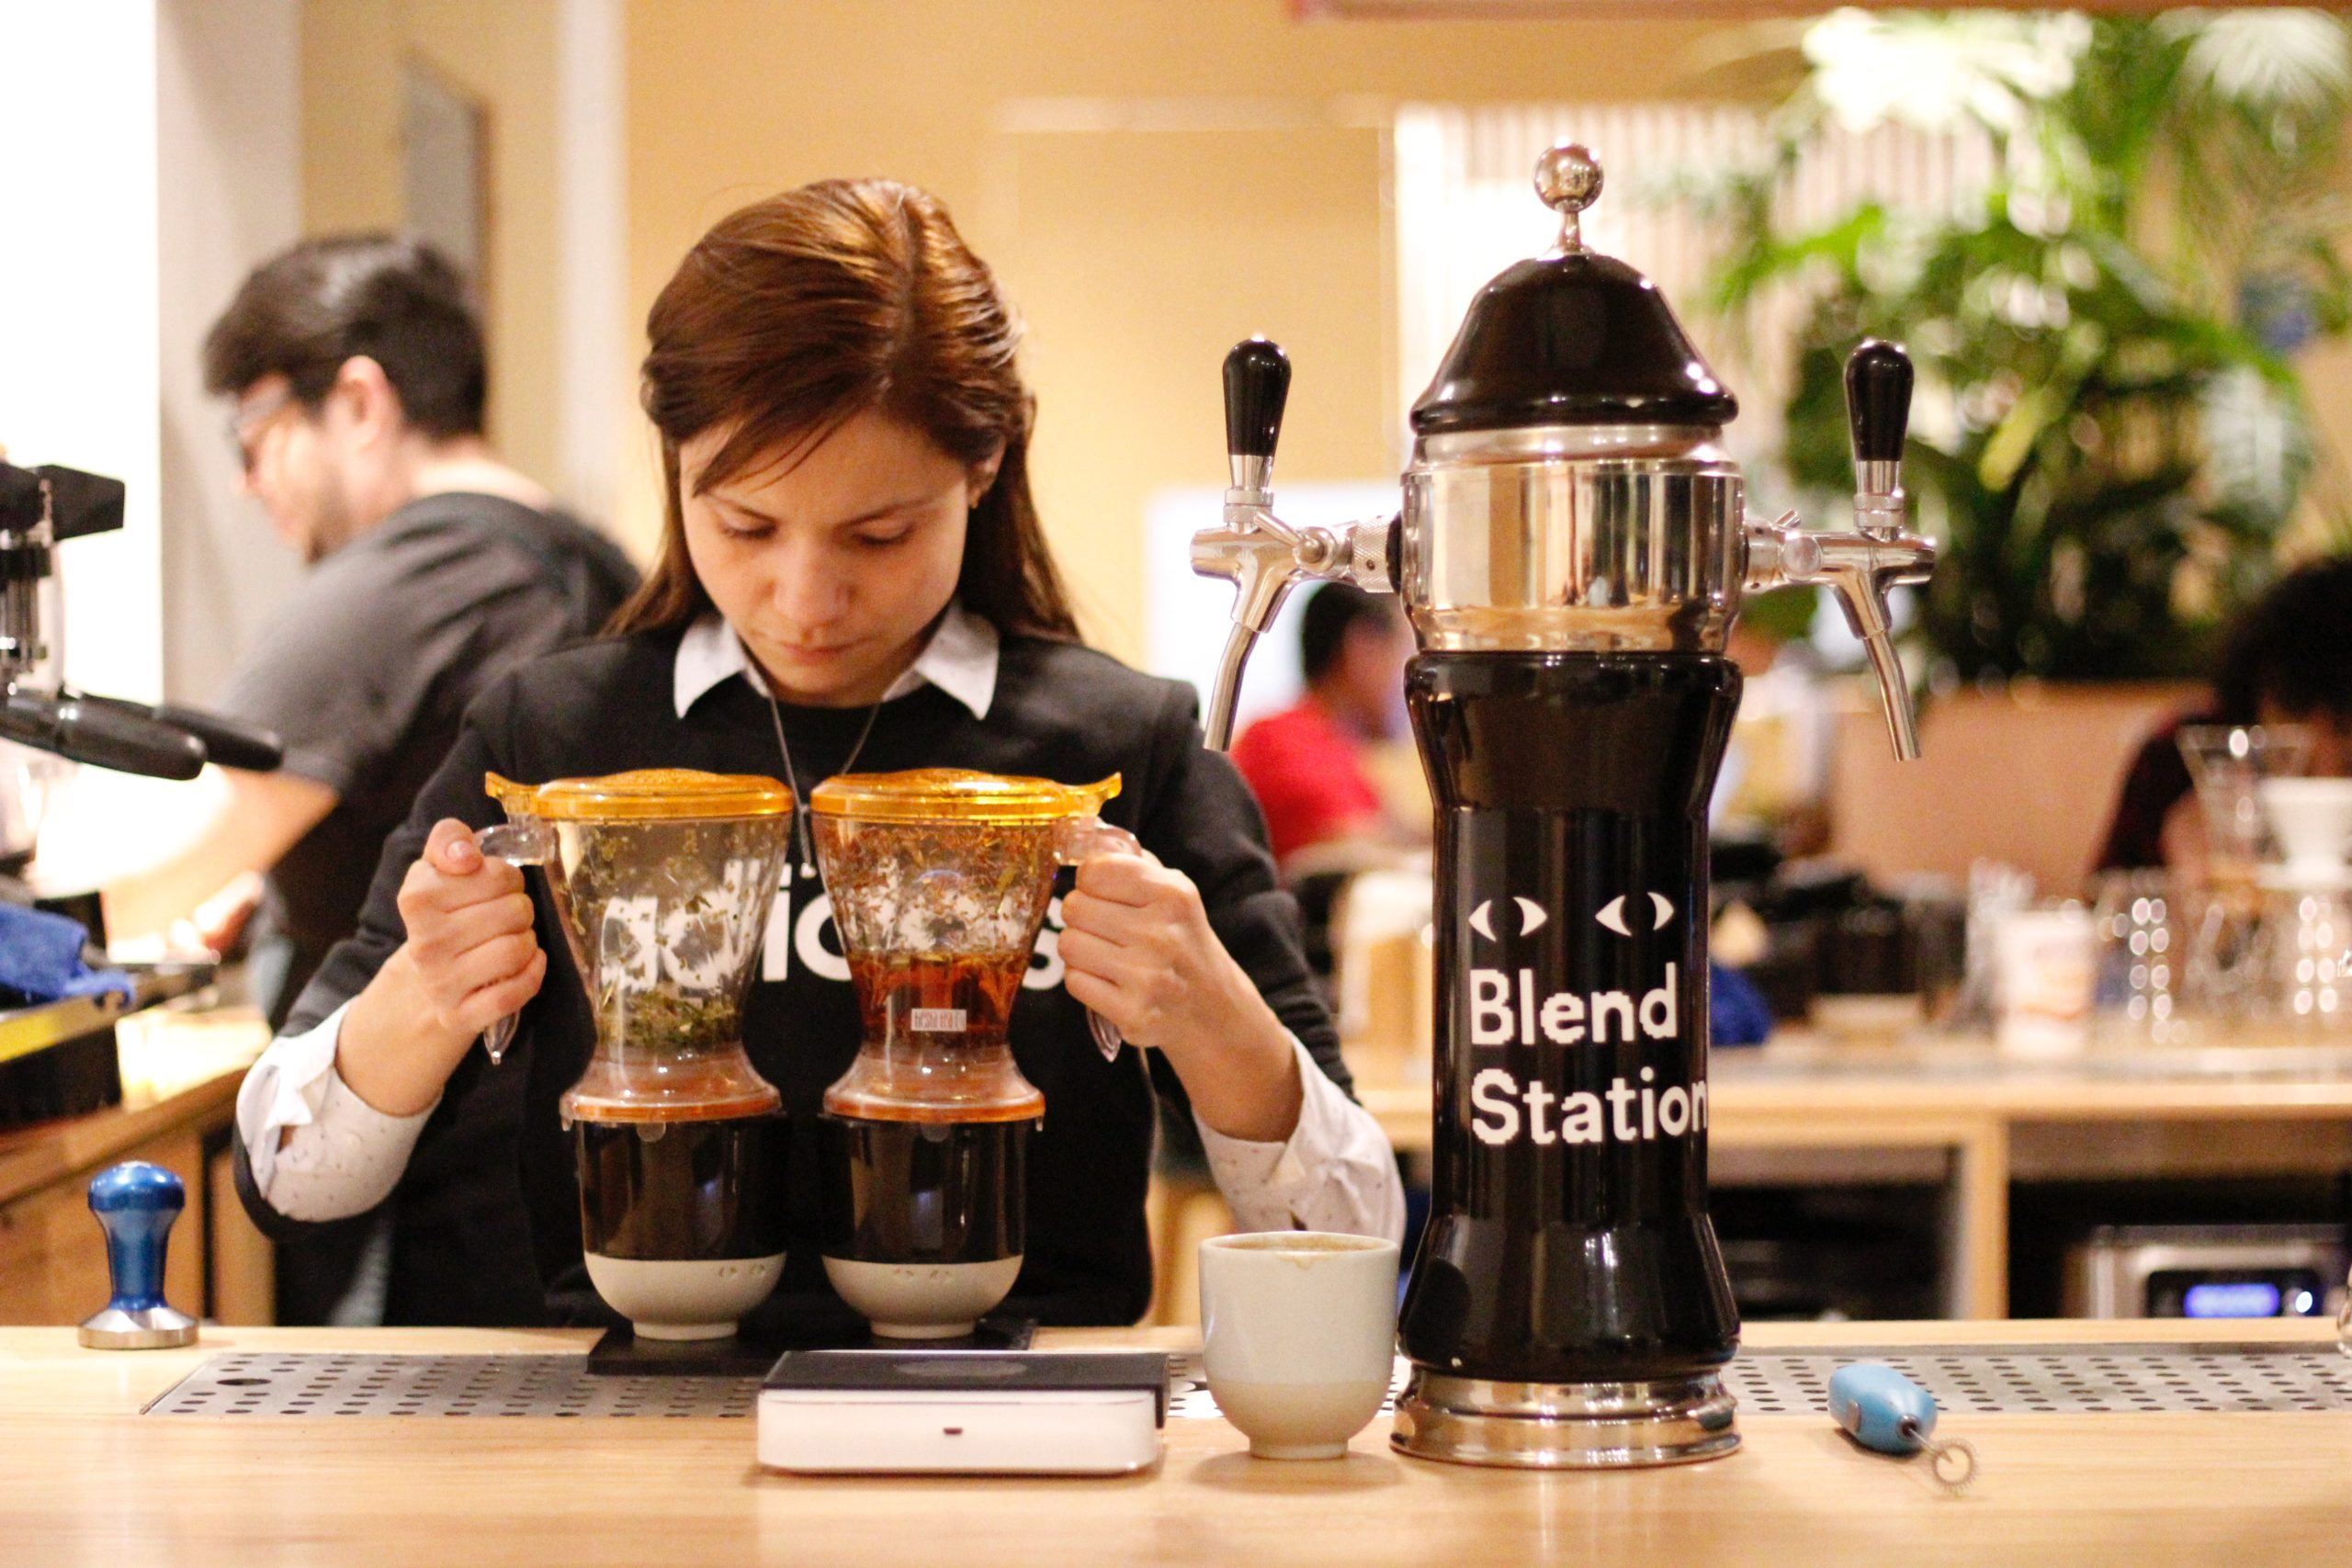 a barista holding two drip coffee